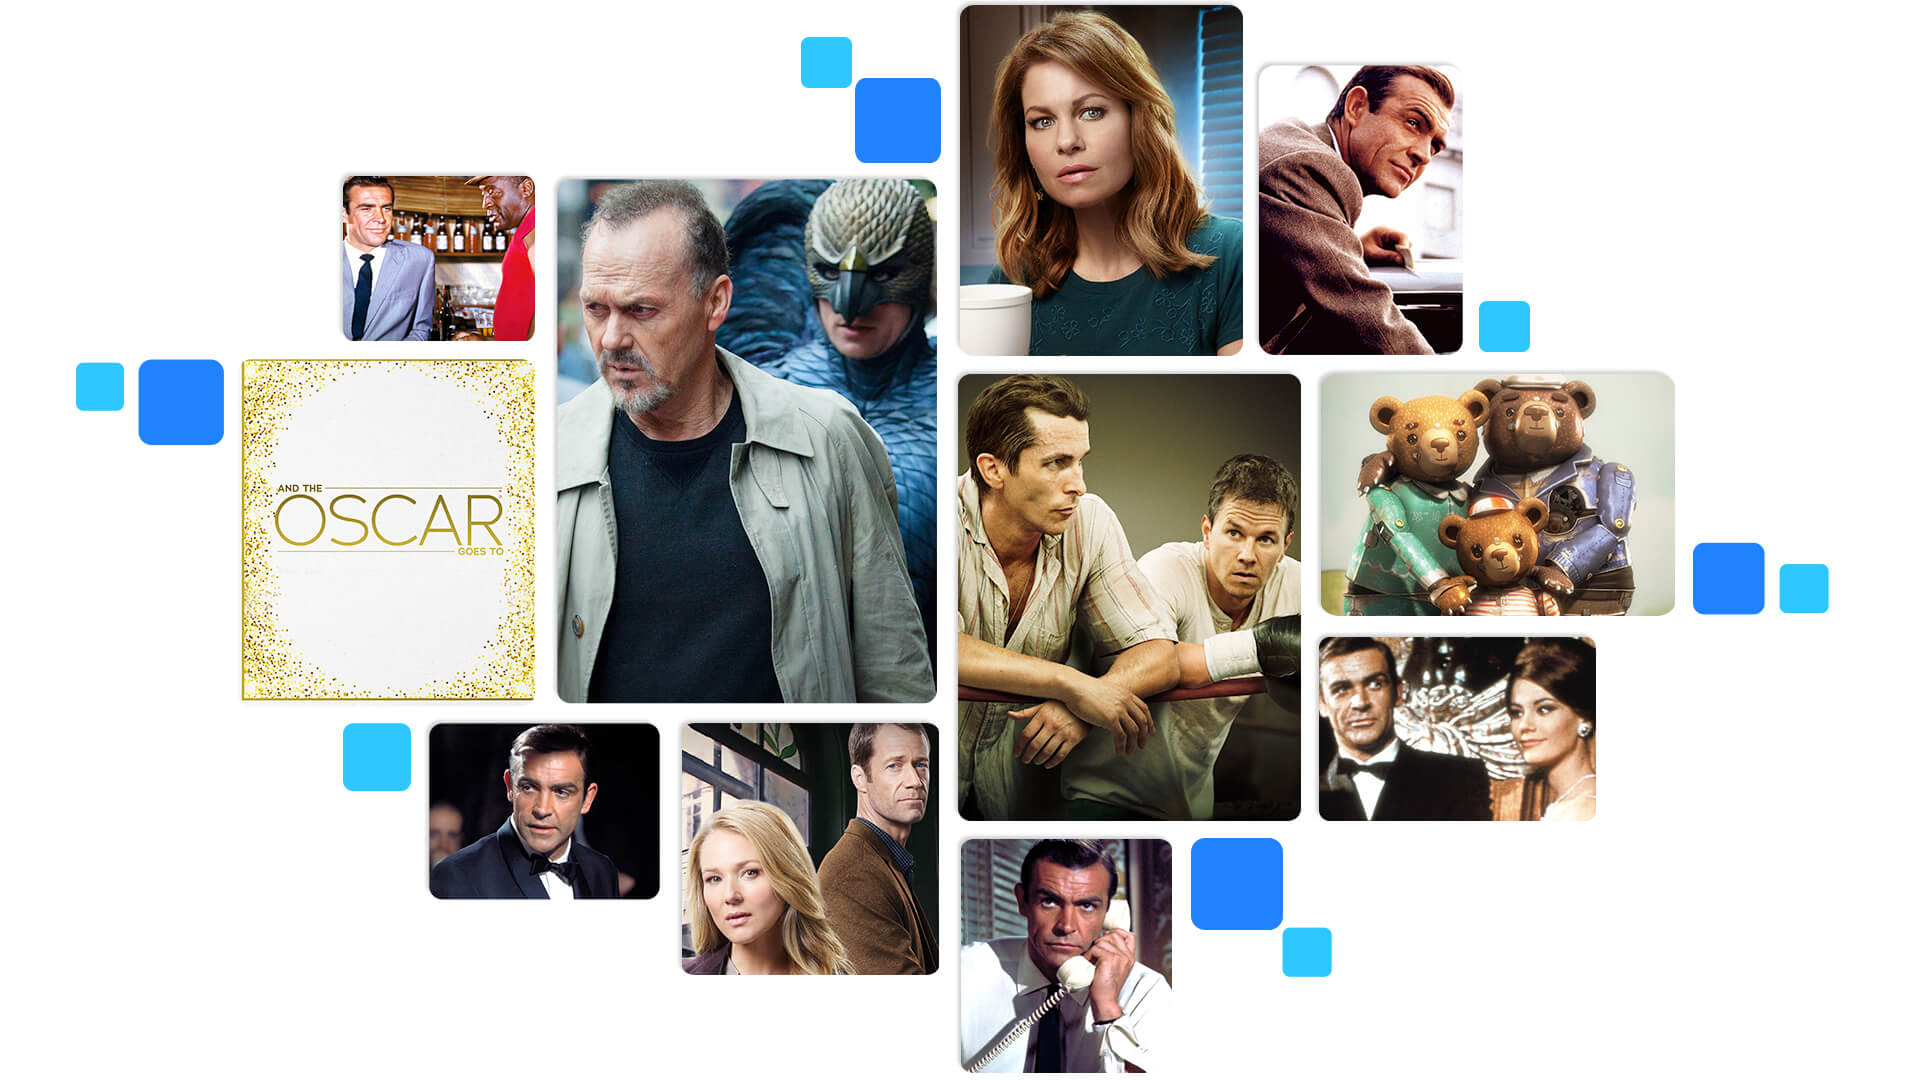 DirecTV HD Extra Pack collage